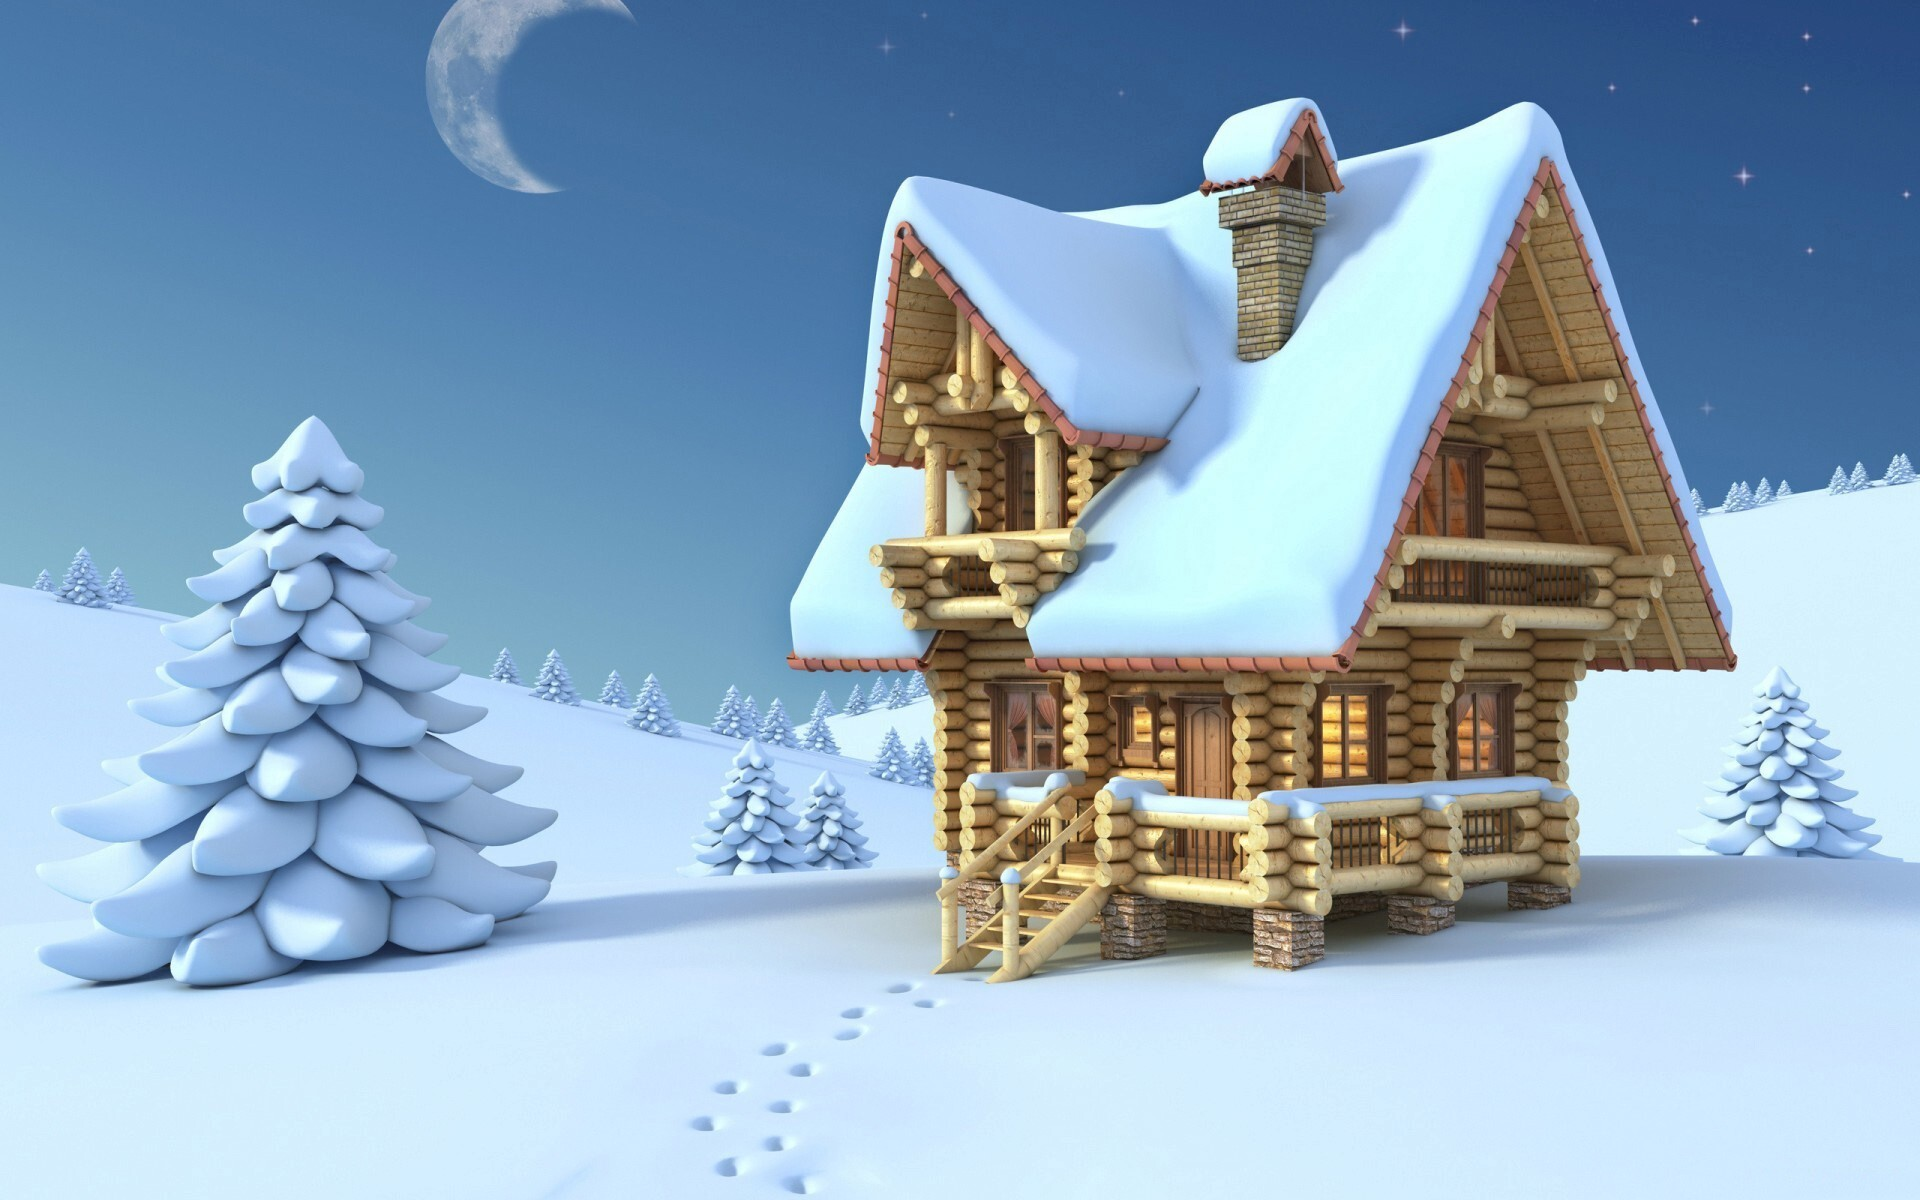 Wonderful Wallpaper Minecraft Christmas - Beautiful_Snowy_House_in_Christmas_Night_Wallpaper  You Should Have_827153.jpg